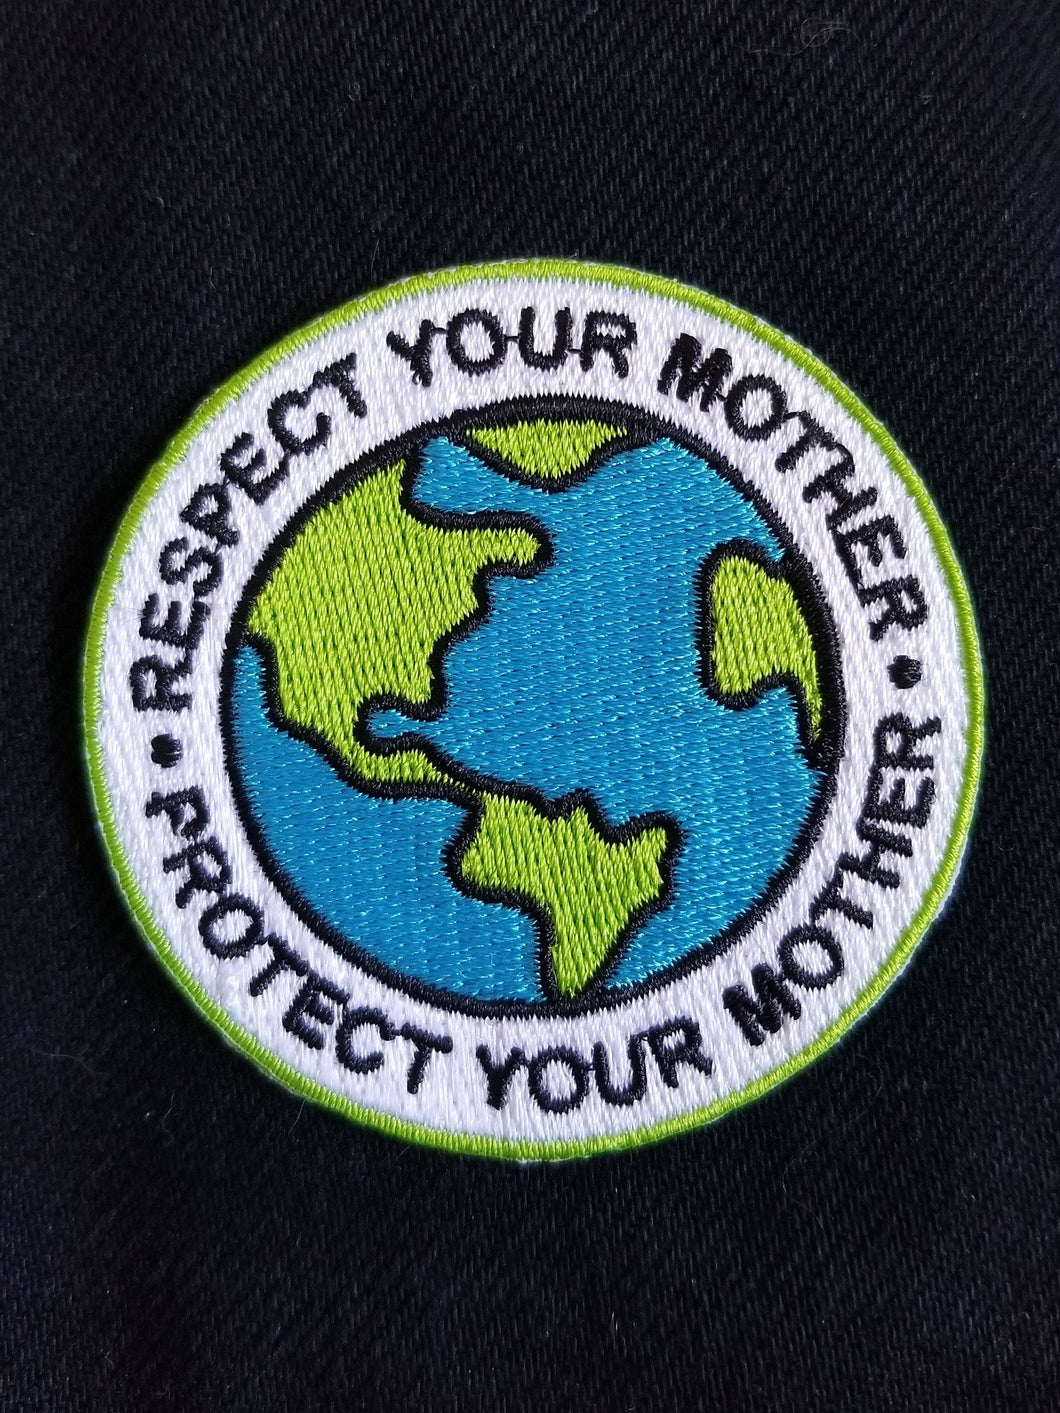 Respect/Protect Earth Patch